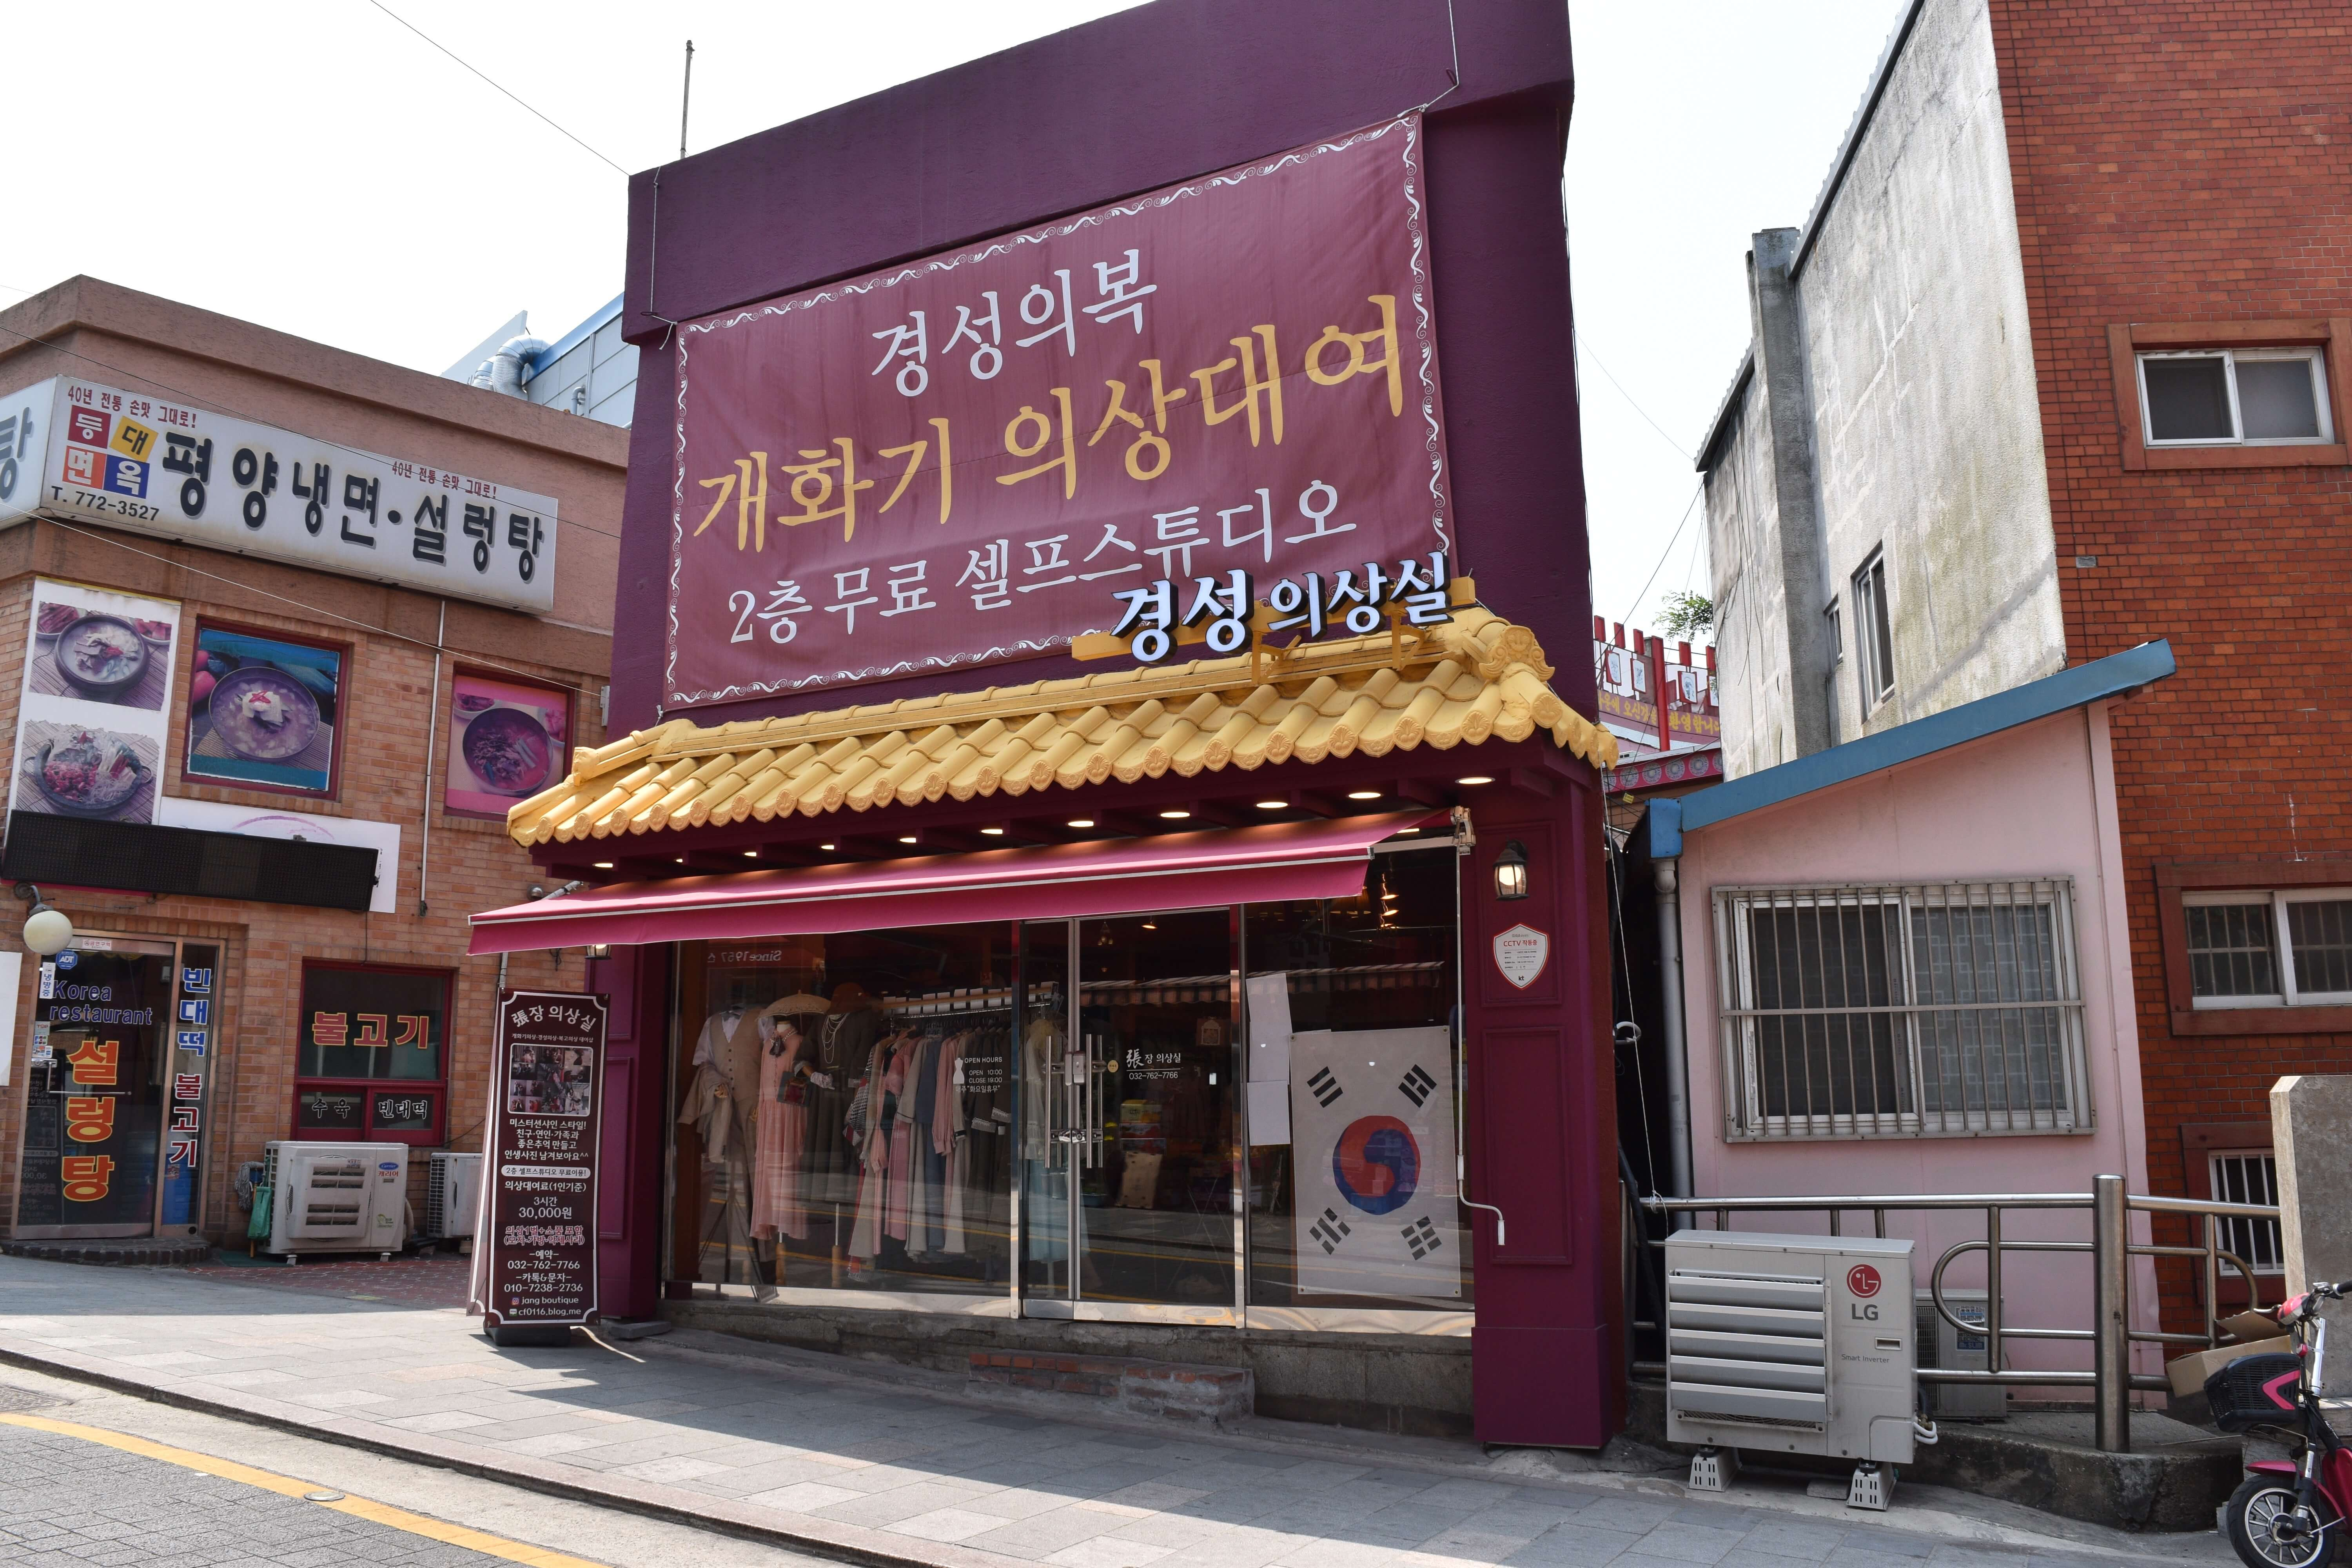 A picture of the store front of the 1920s Clothes Shop in incheon china town.